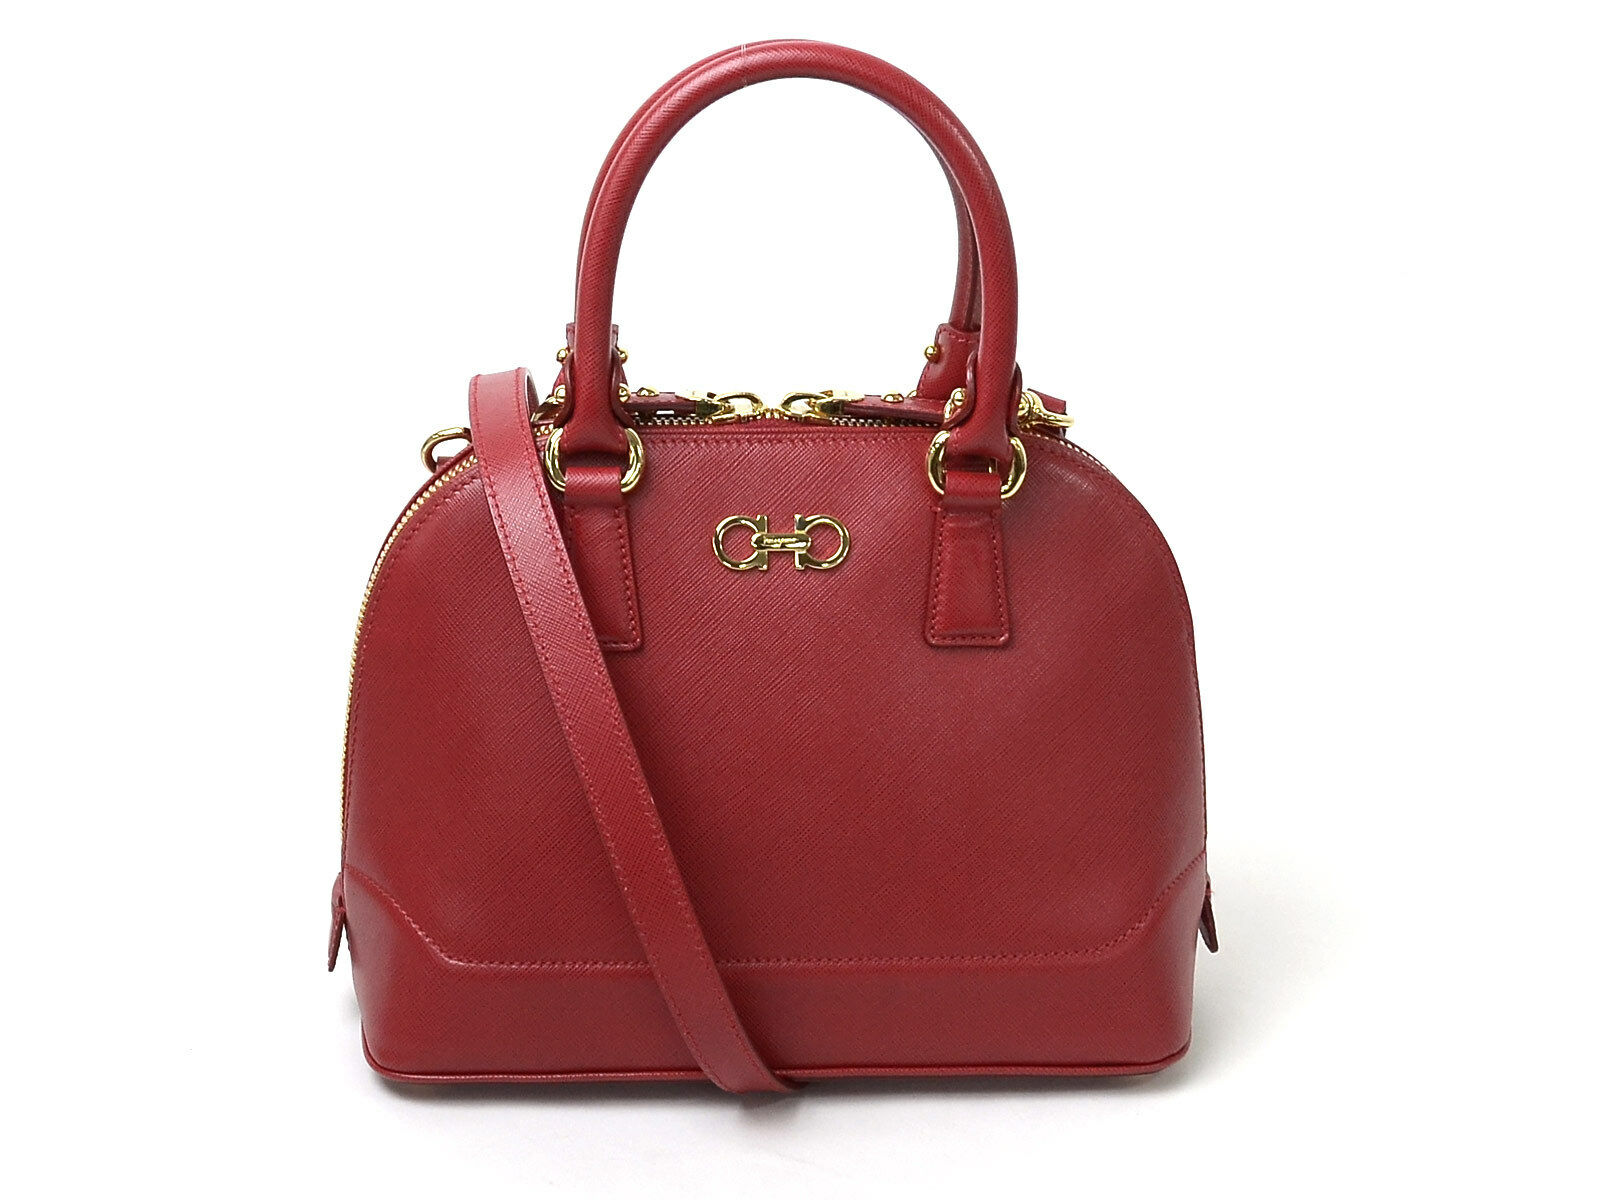 Auth Salvatore Ferragamo Gancini 2-way Handbag Shoulder Bag Red Leather - 93653